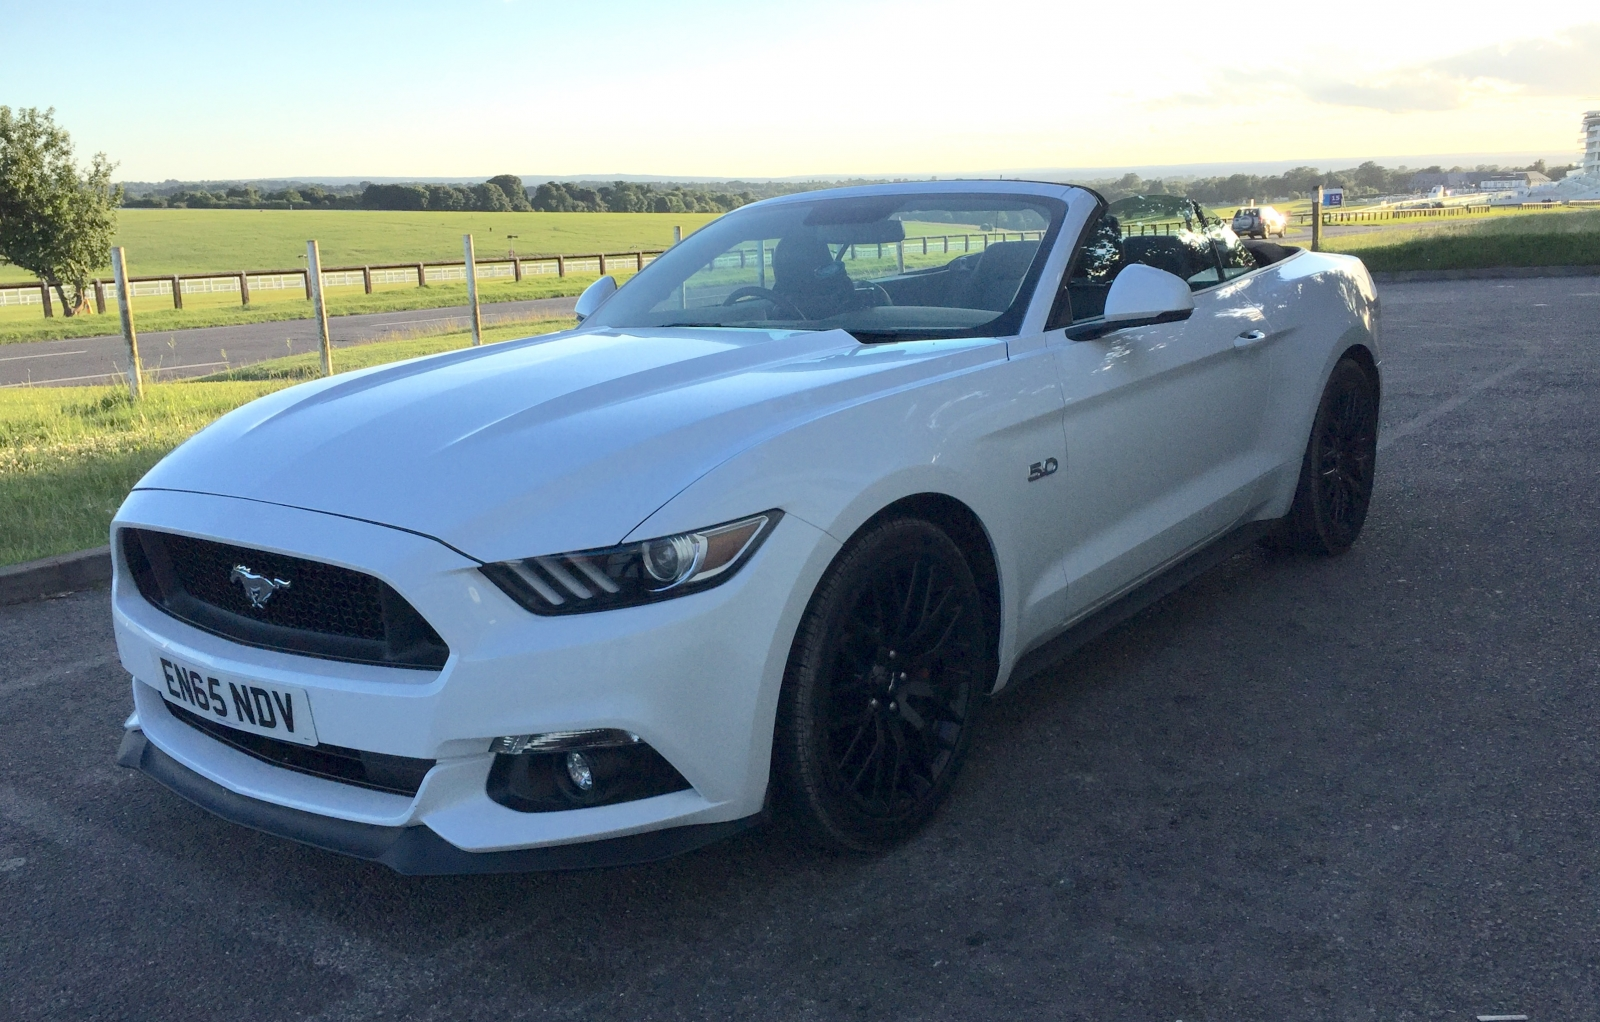 ford mustang v8 convertible review is uncle sam ready to visit the uk. Black Bedroom Furniture Sets. Home Design Ideas